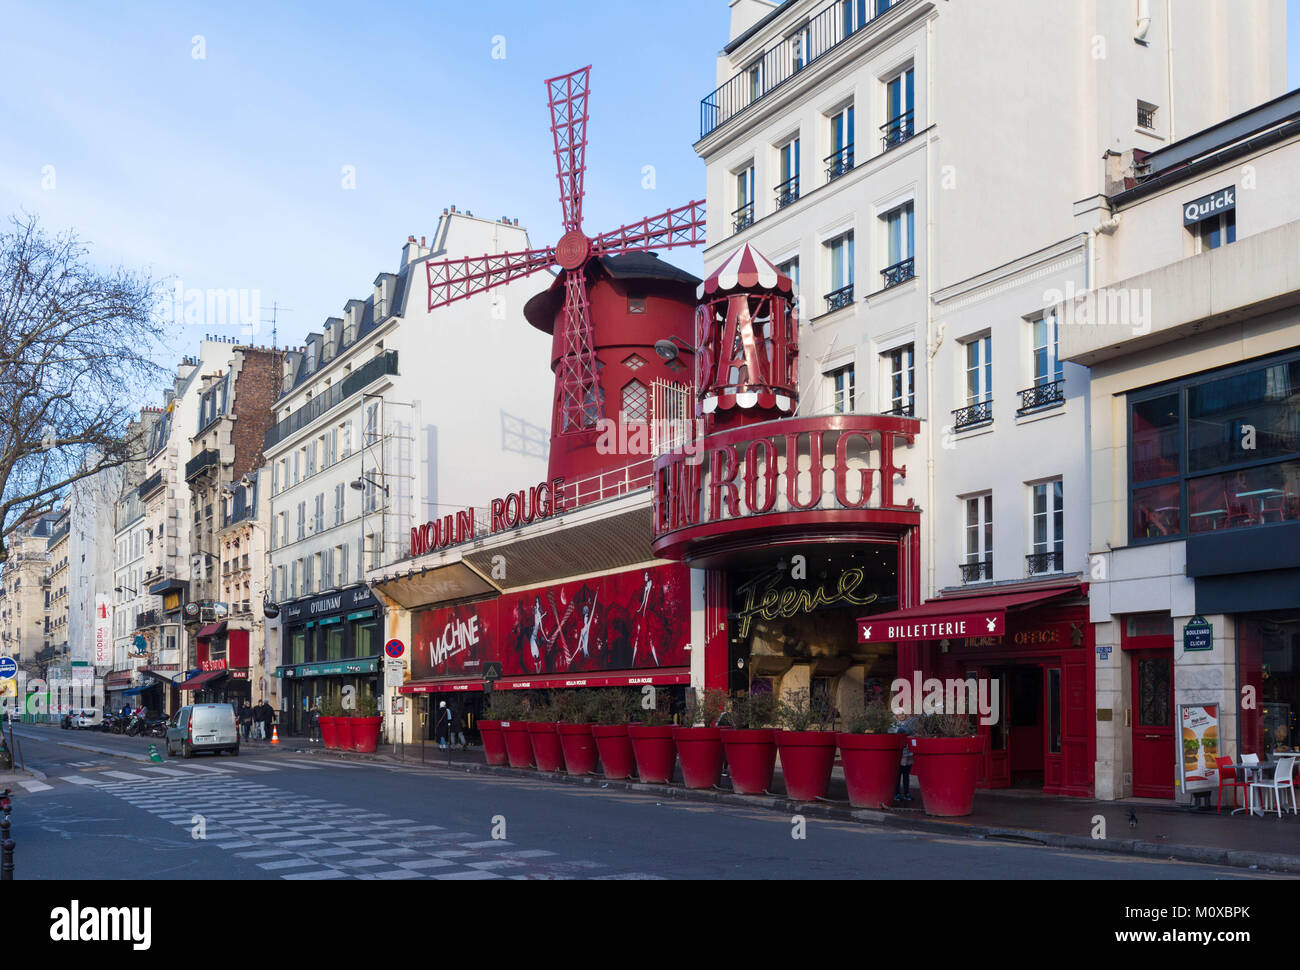 The Moulin Rouge , Paris, France. It is a famous cabaret built in 1889, locating in the Paris red-light district - Stock Image